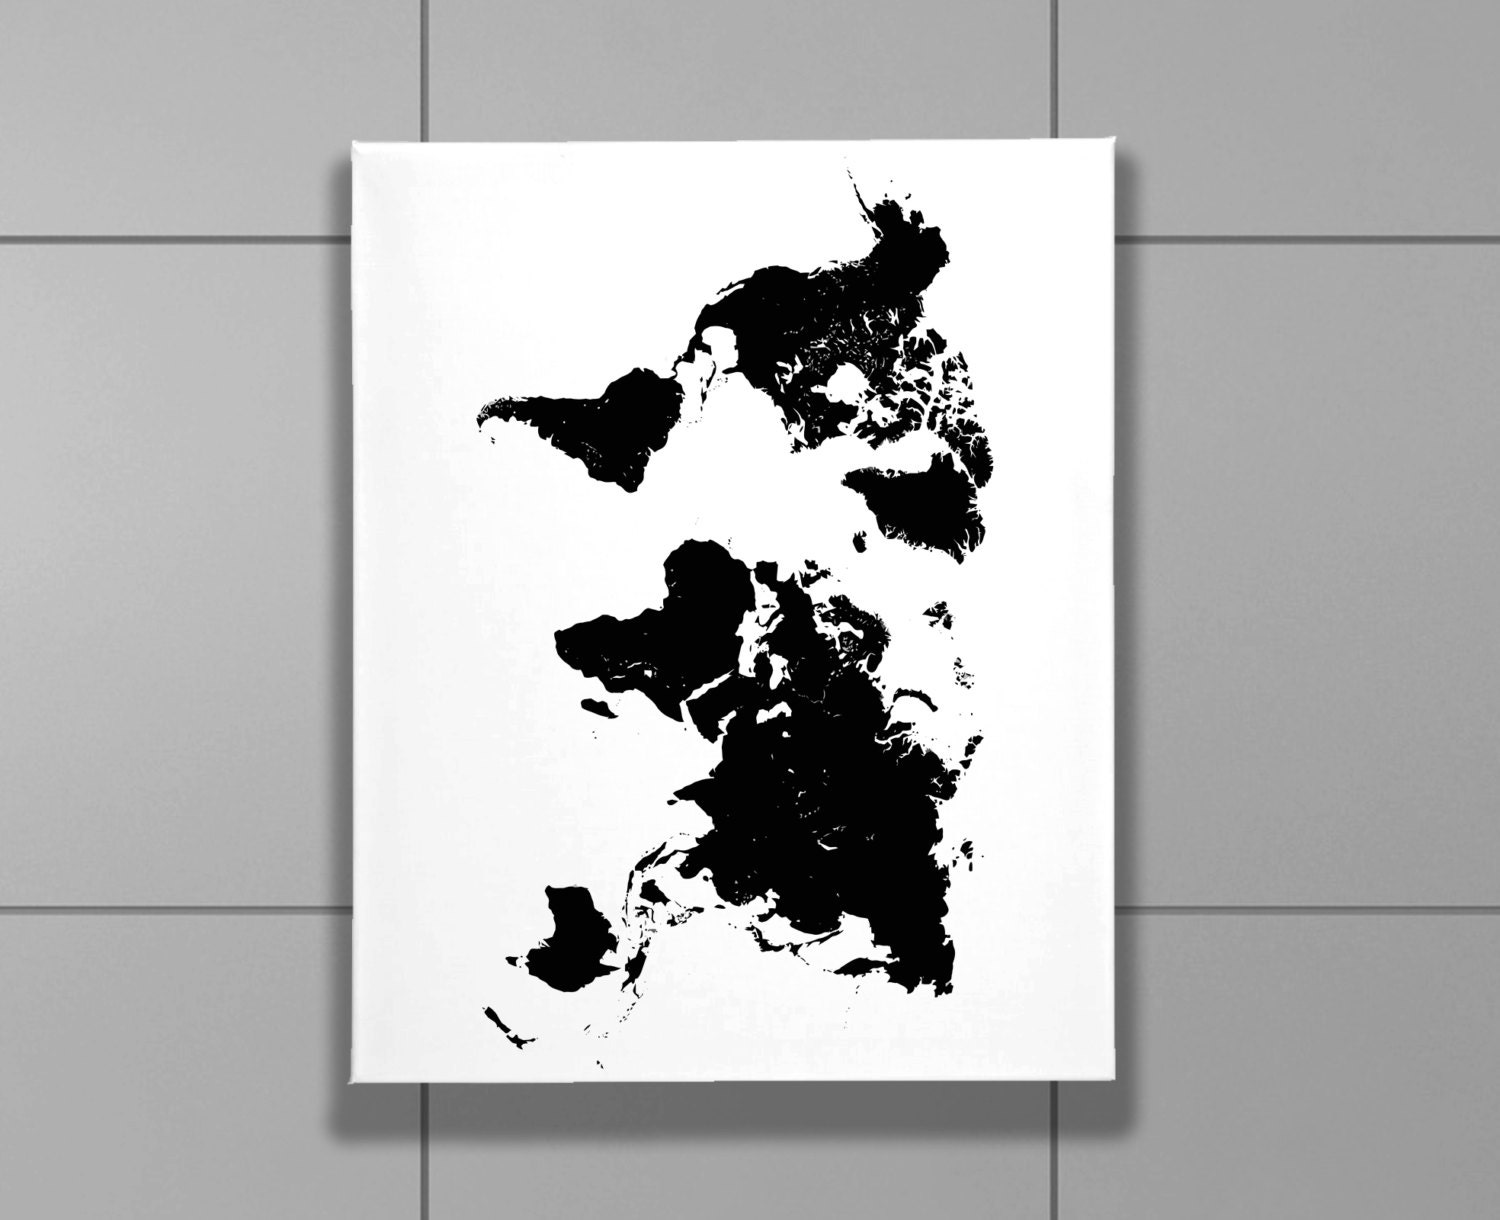 Wrap canvas print 8 x 10 black and white printed world map travel wrap canvas print 8 x 10 black and white printed world map travel bedroom gumiabroncs Choice Image